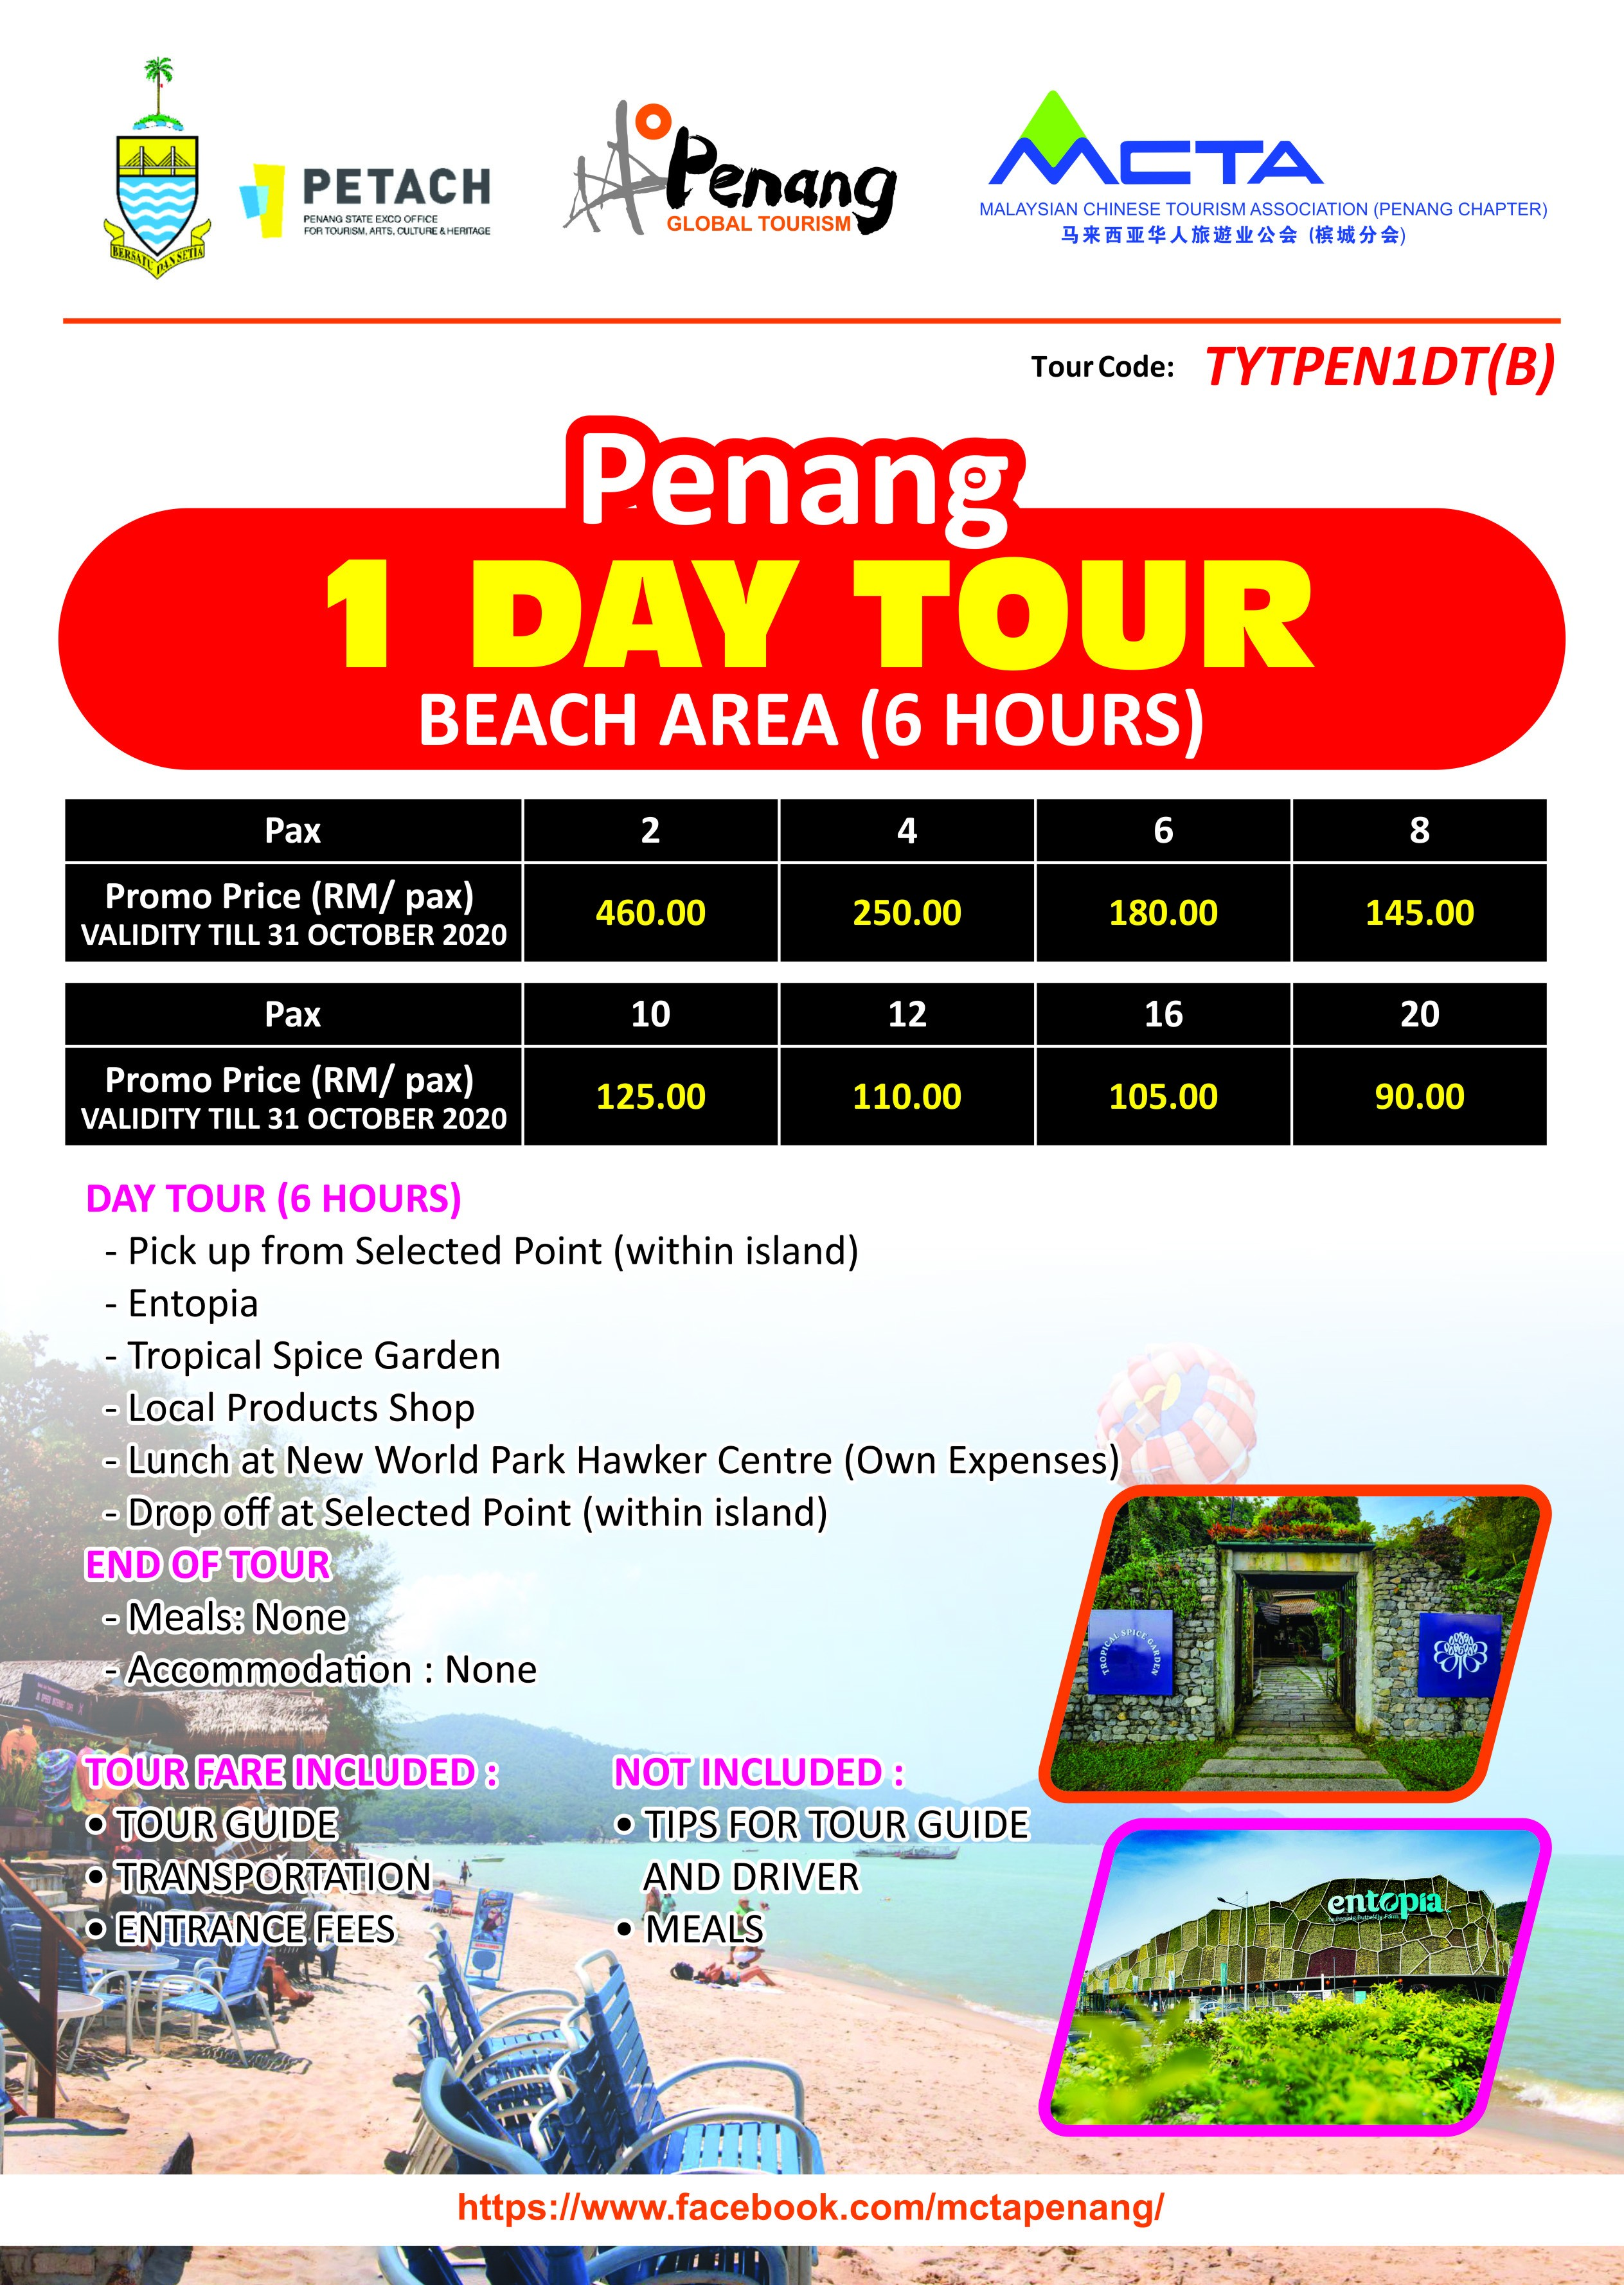 Penang 1 Day Tour - Beach Area (6 Hours)